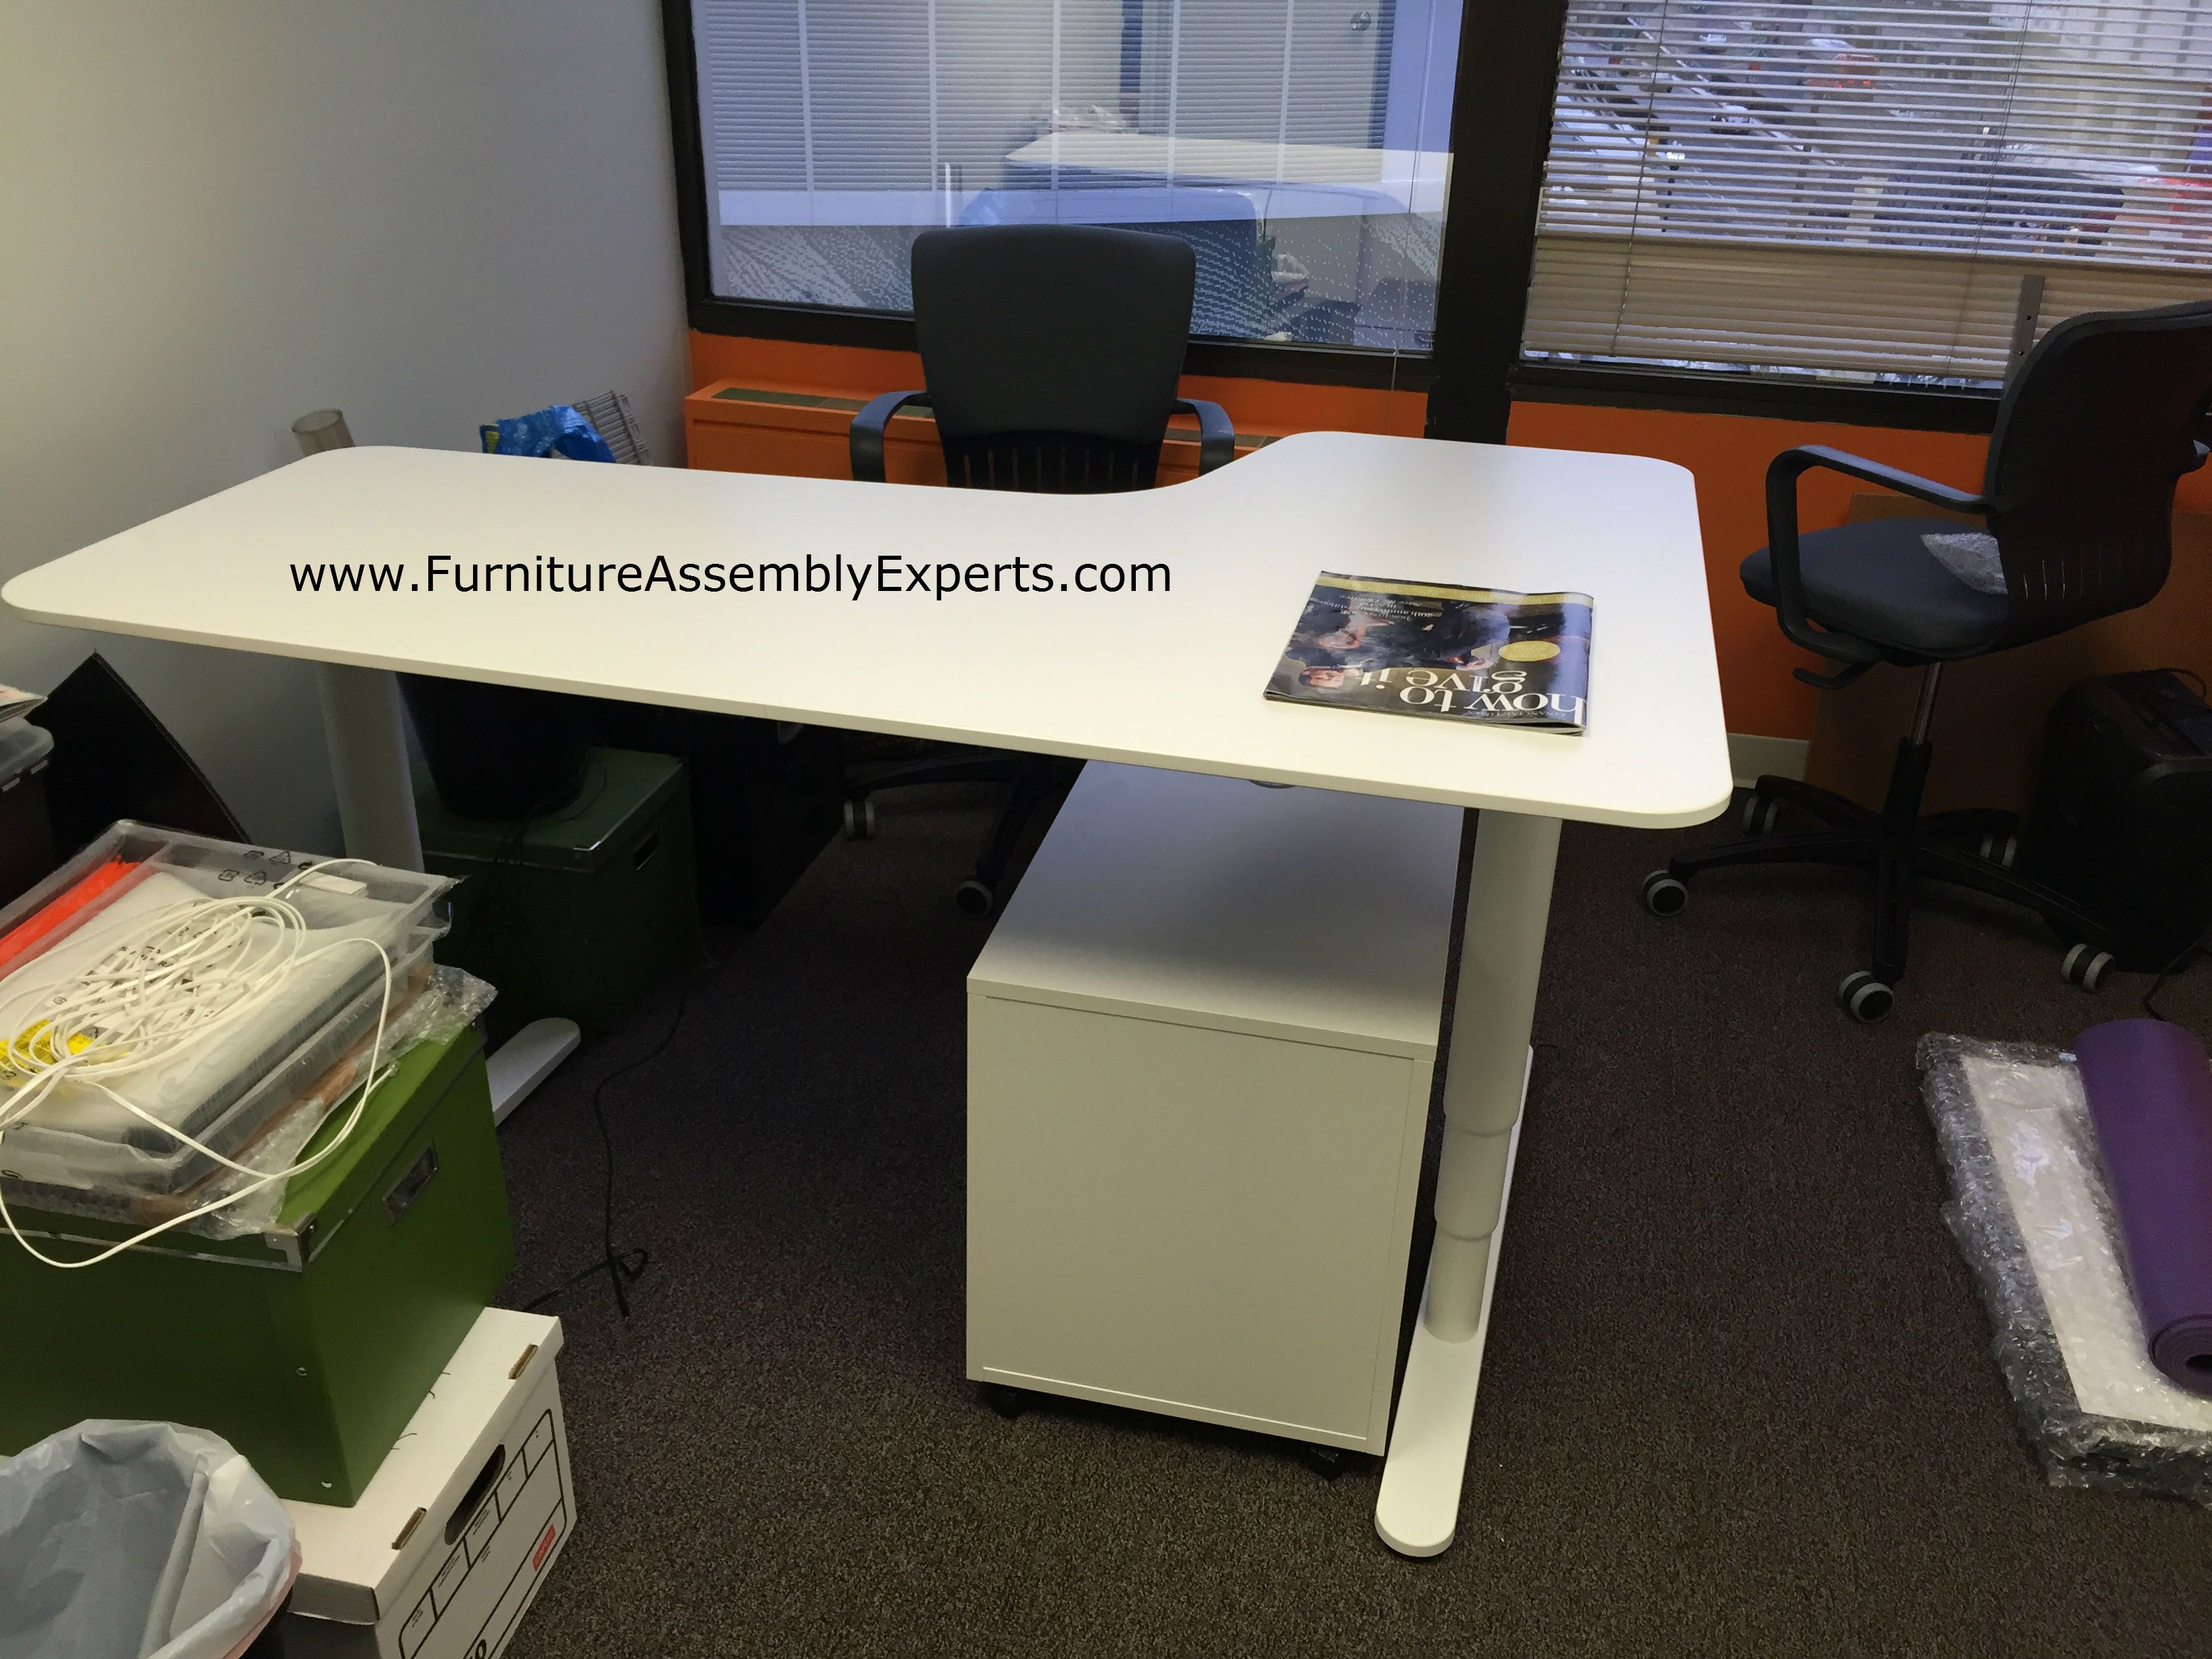 Ikea Bekant Sit/stand Electric Adjustable Height Desk With Galant File  Cabinet Assembled In Arlington VA For Kanter U0026 Company By Furniture  Assembly Experts ...